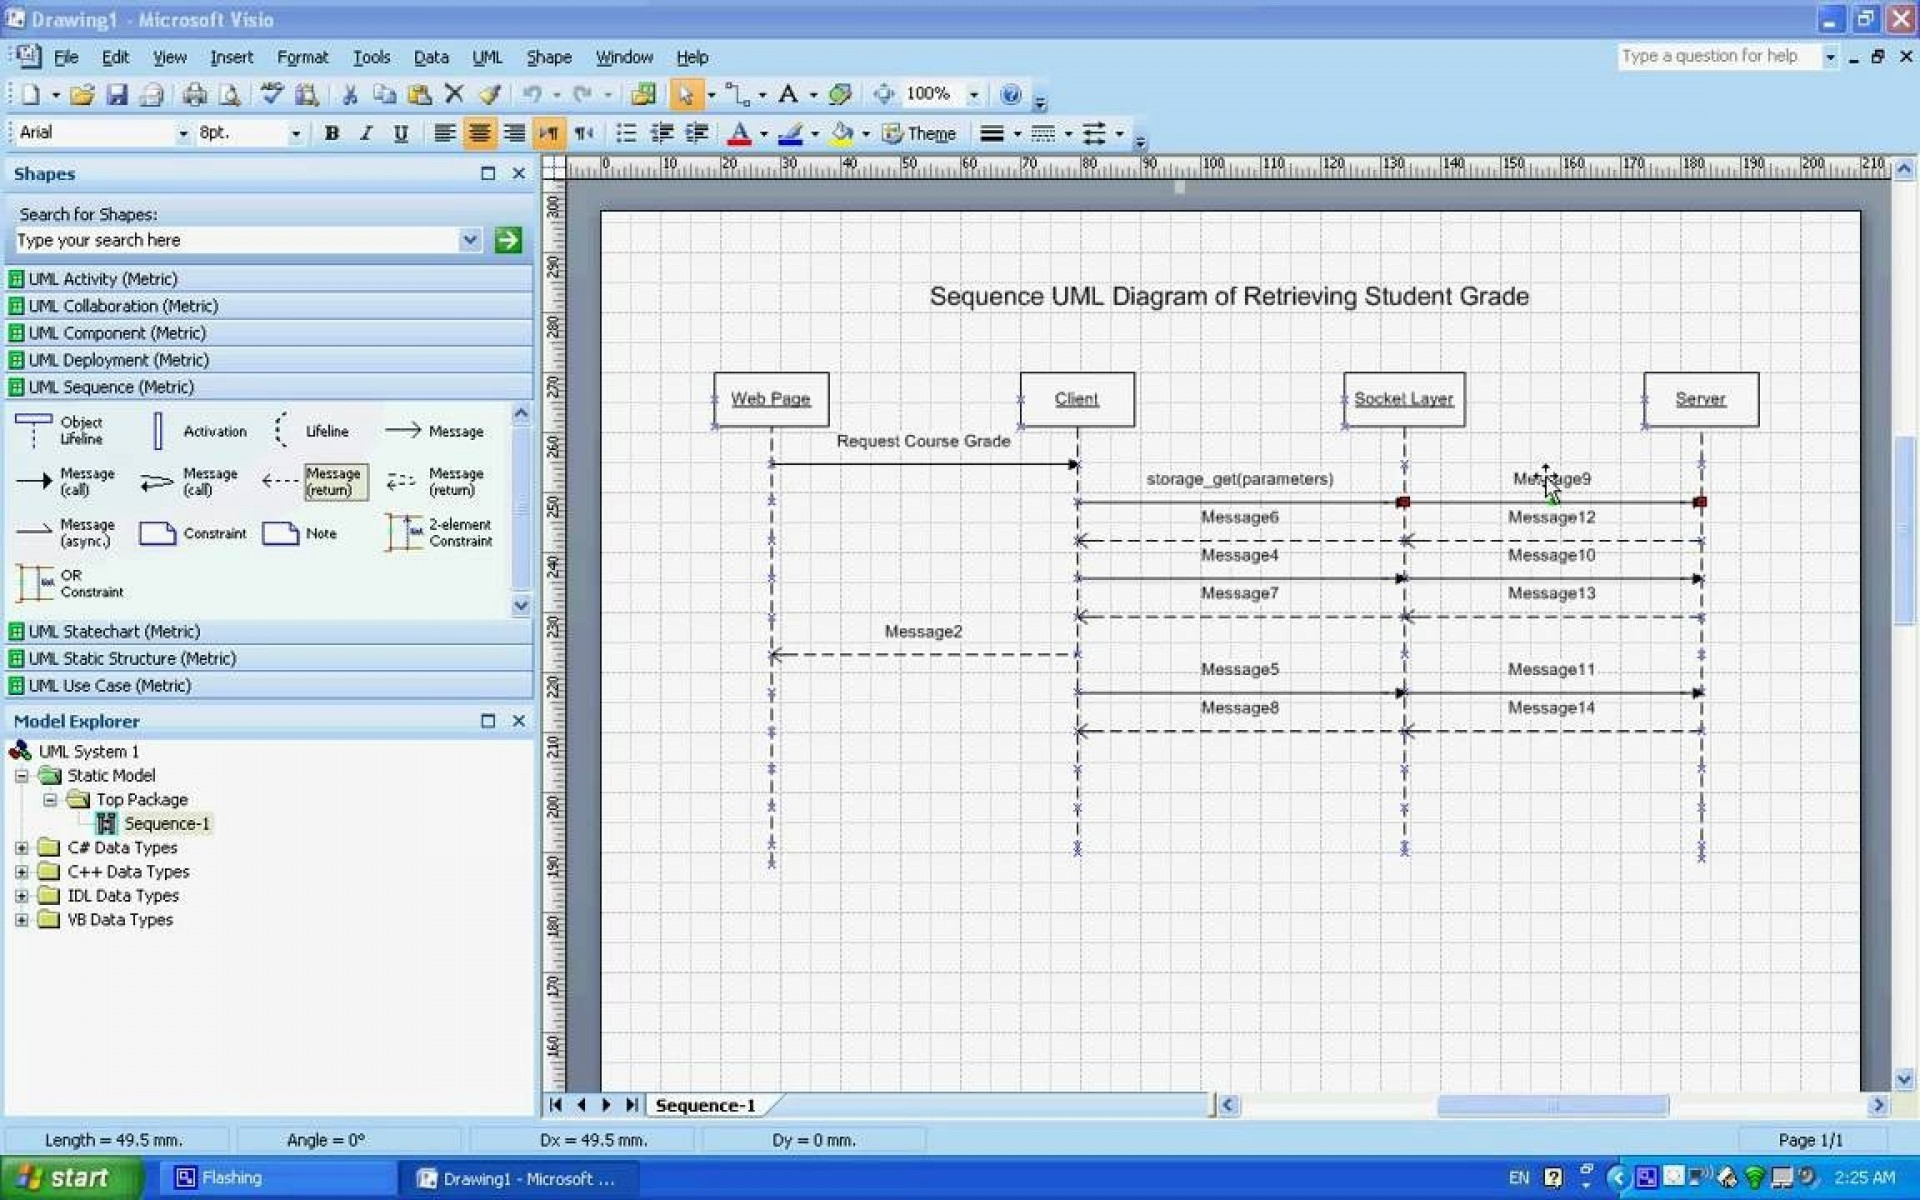 002 Awesome Uml Diagram Template Visio 2010 High Definition  Model Download Clas1920